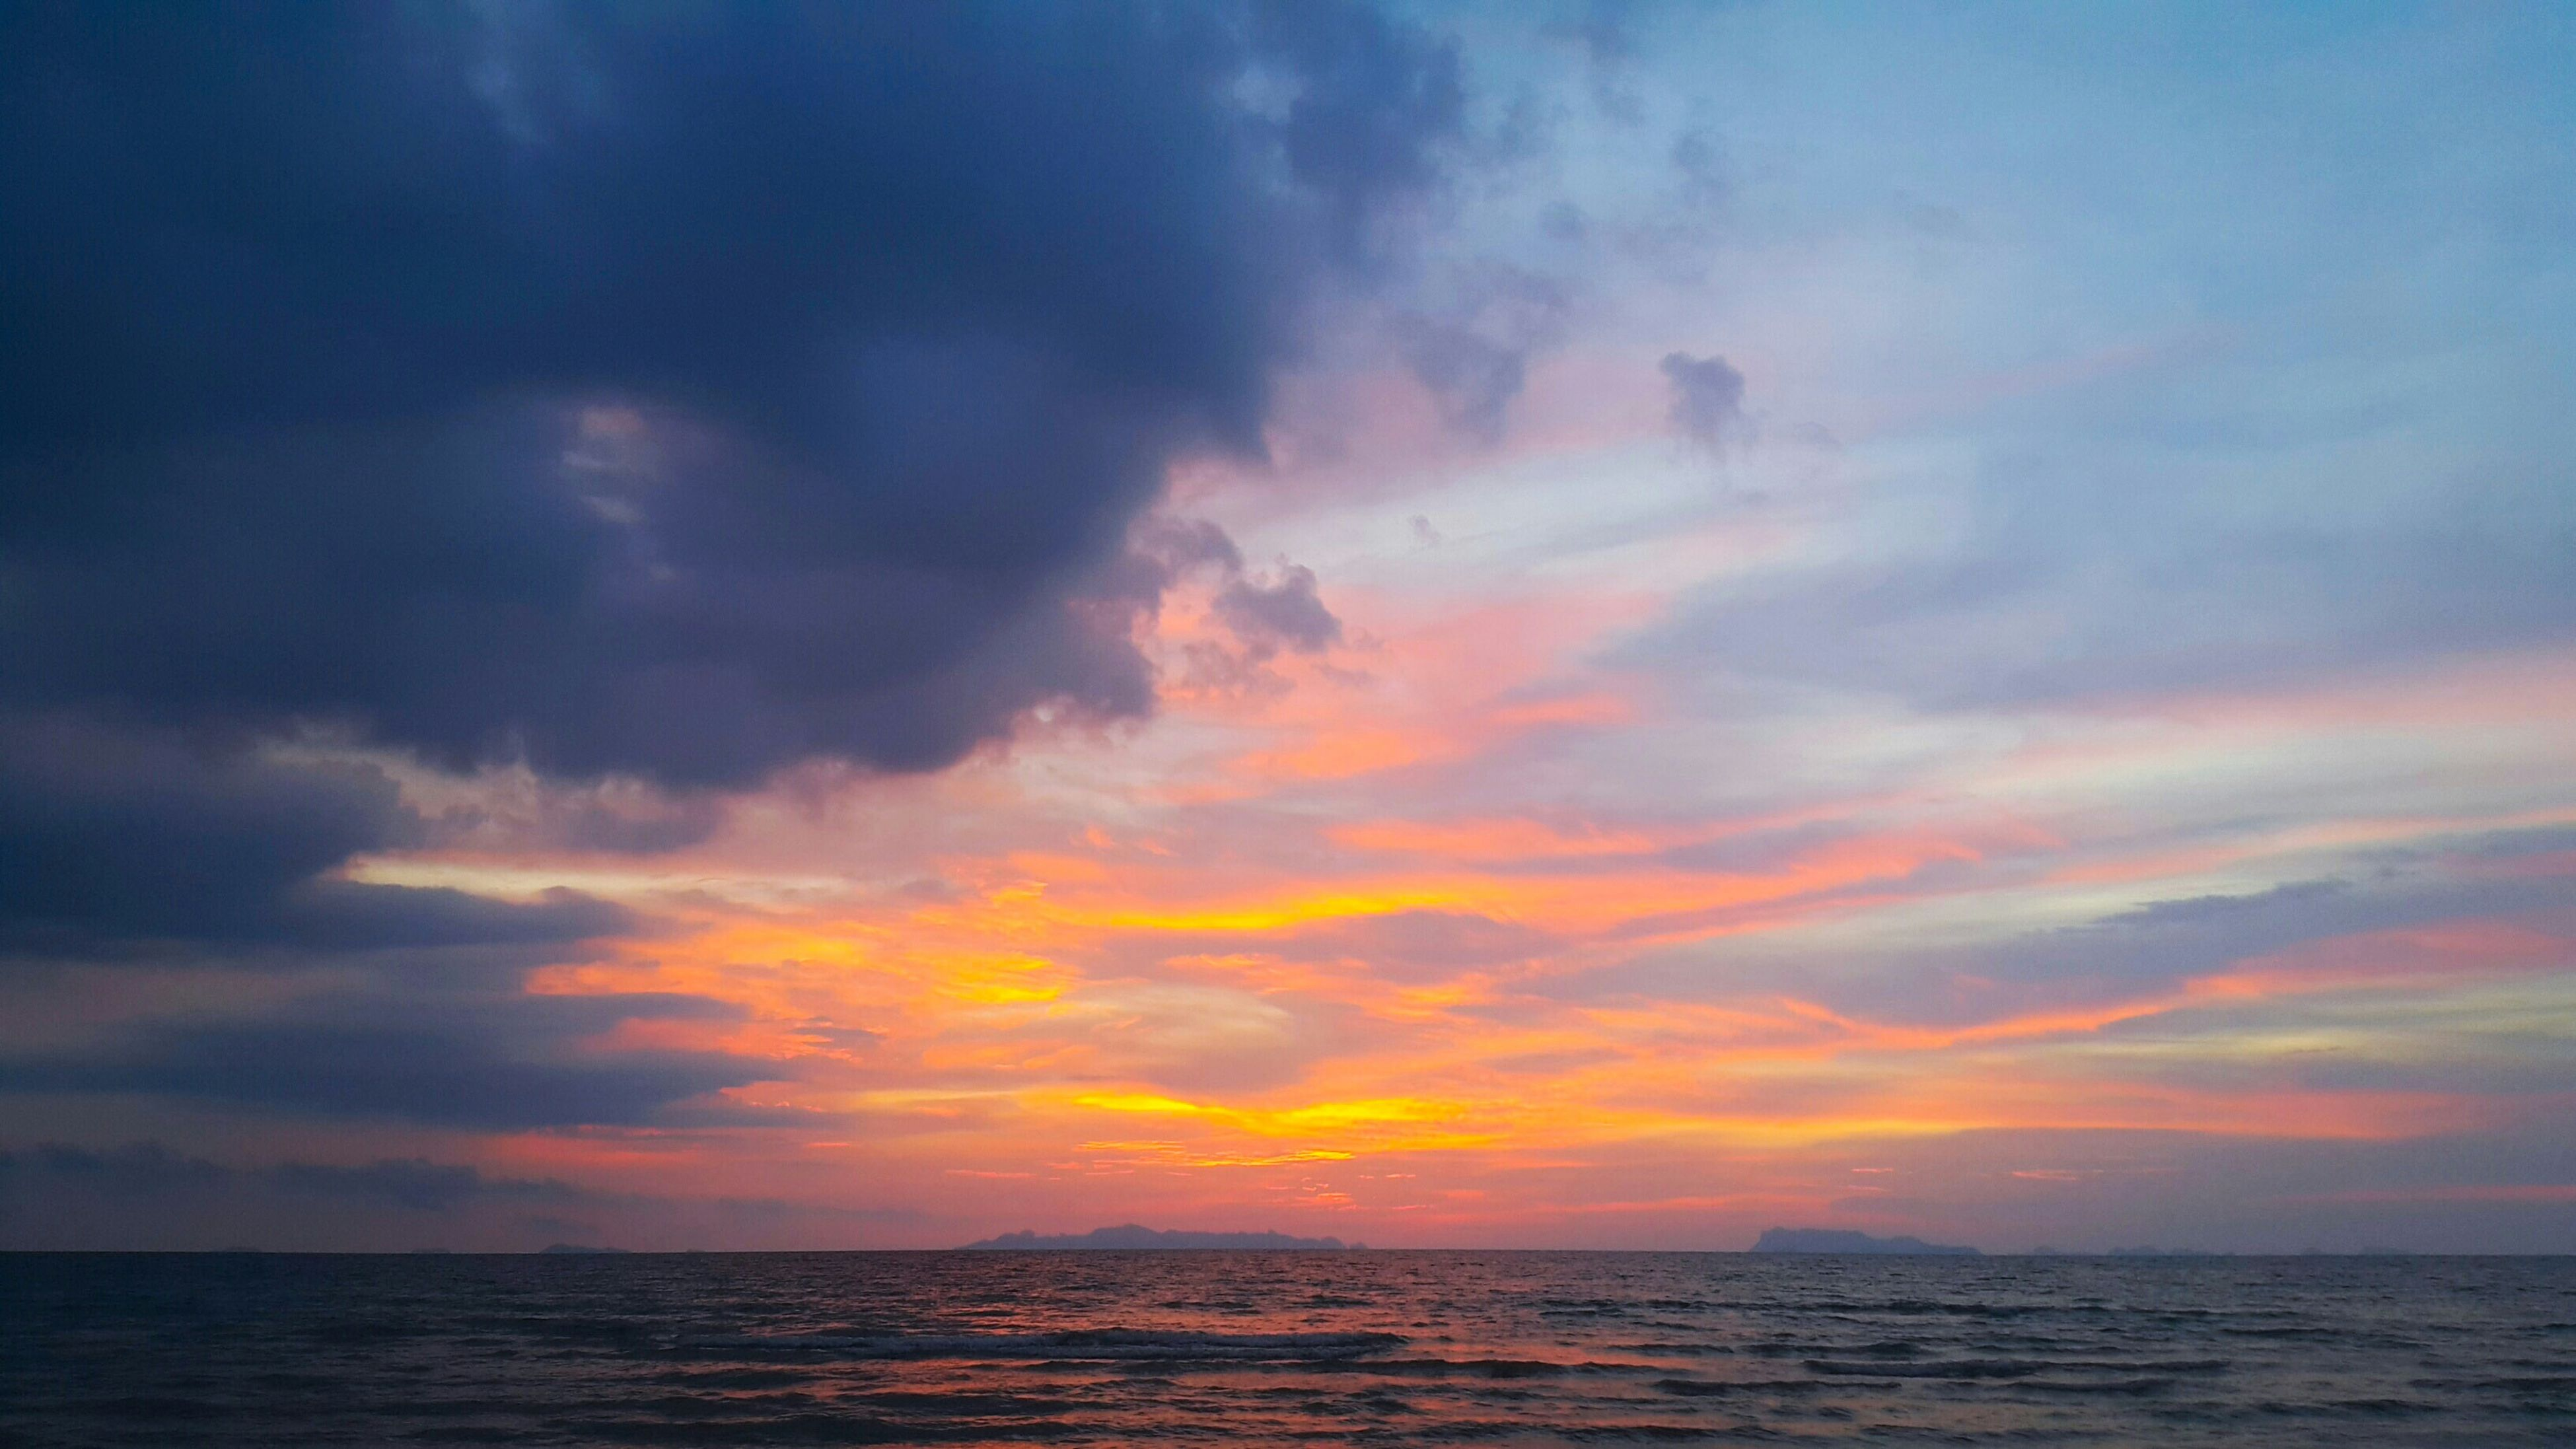 sea, horizon over water, scenics, sunset, tranquil scene, water, beauty in nature, sky, tranquility, waterfront, idyllic, nature, cloud - sky, orange color, cloud, cloudy, dramatic sky, outdoors, seascape, no people